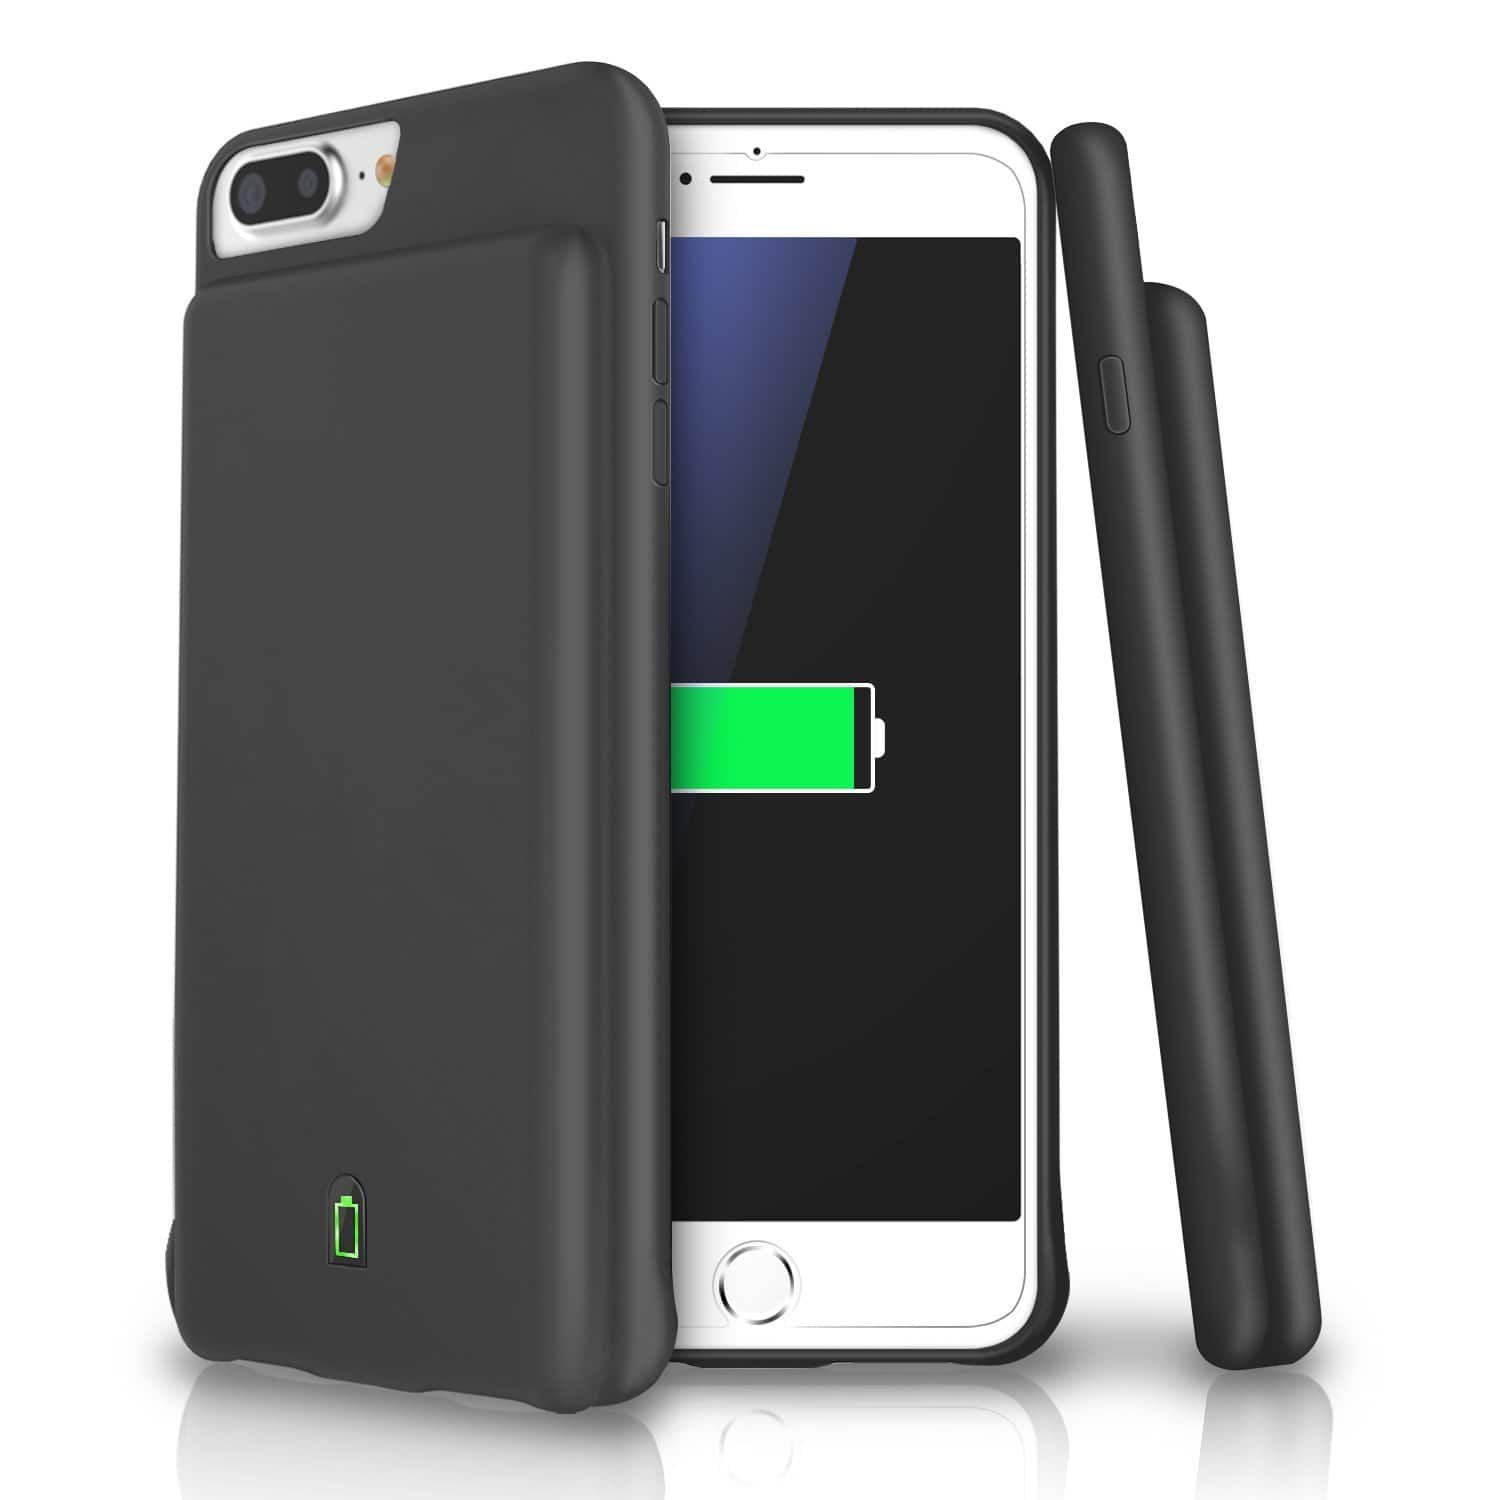 LoHi 7000mAh/4000mAh Capacity Portable Battery Charger for iPhone $26 & Rubber and Silicone Rugged Heavy Duty iPhone Case $1.40 AC + FS @Amazon